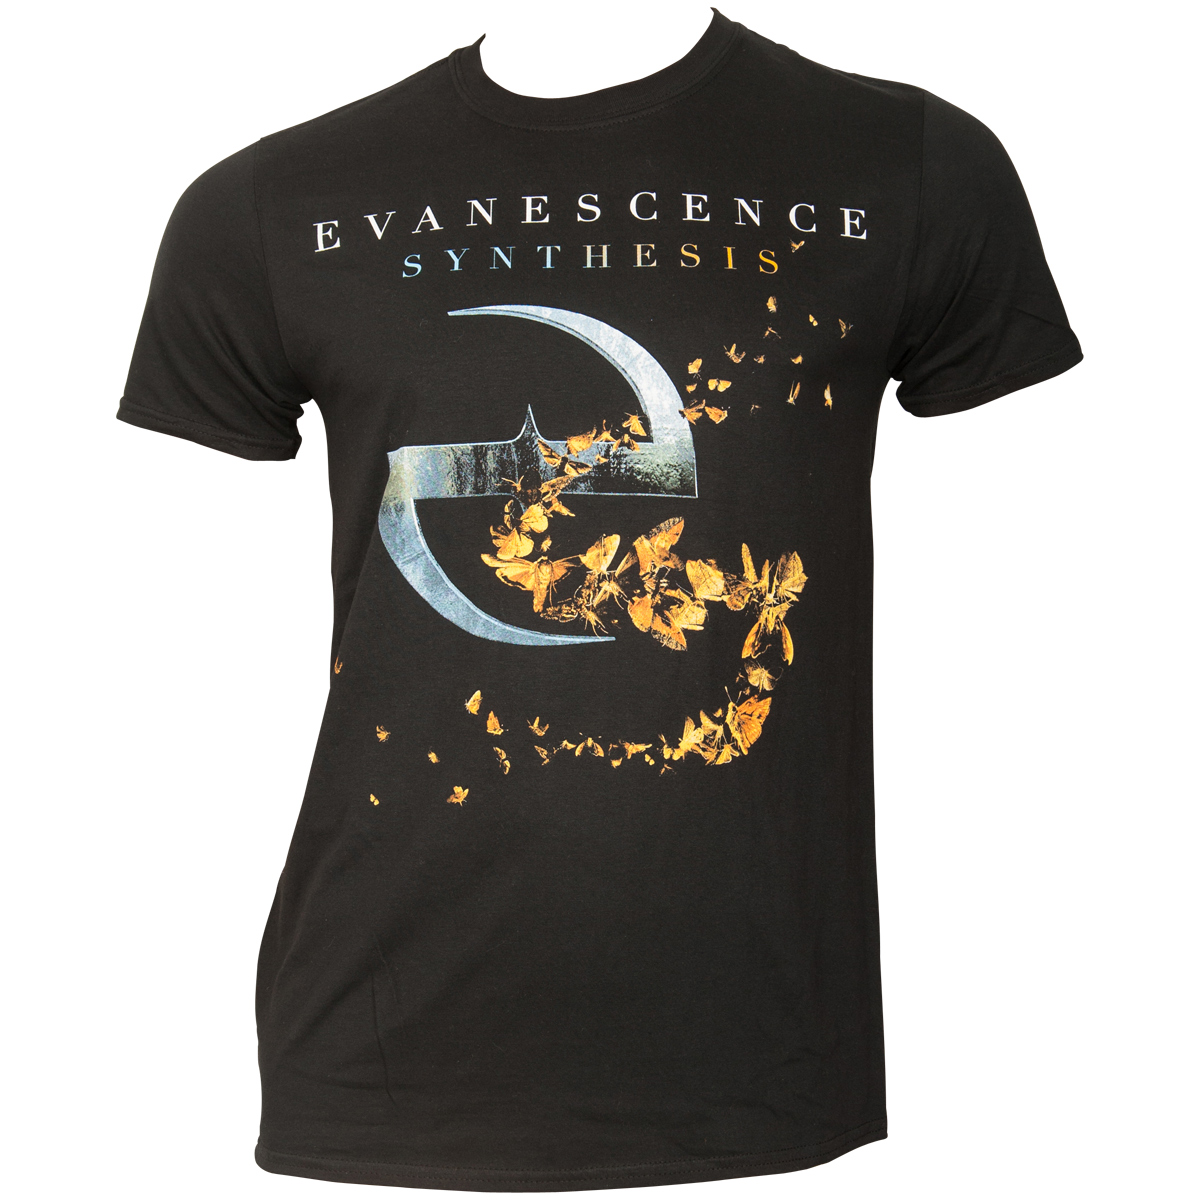 Evanescence - T-Shirt Synthesis - schwarz